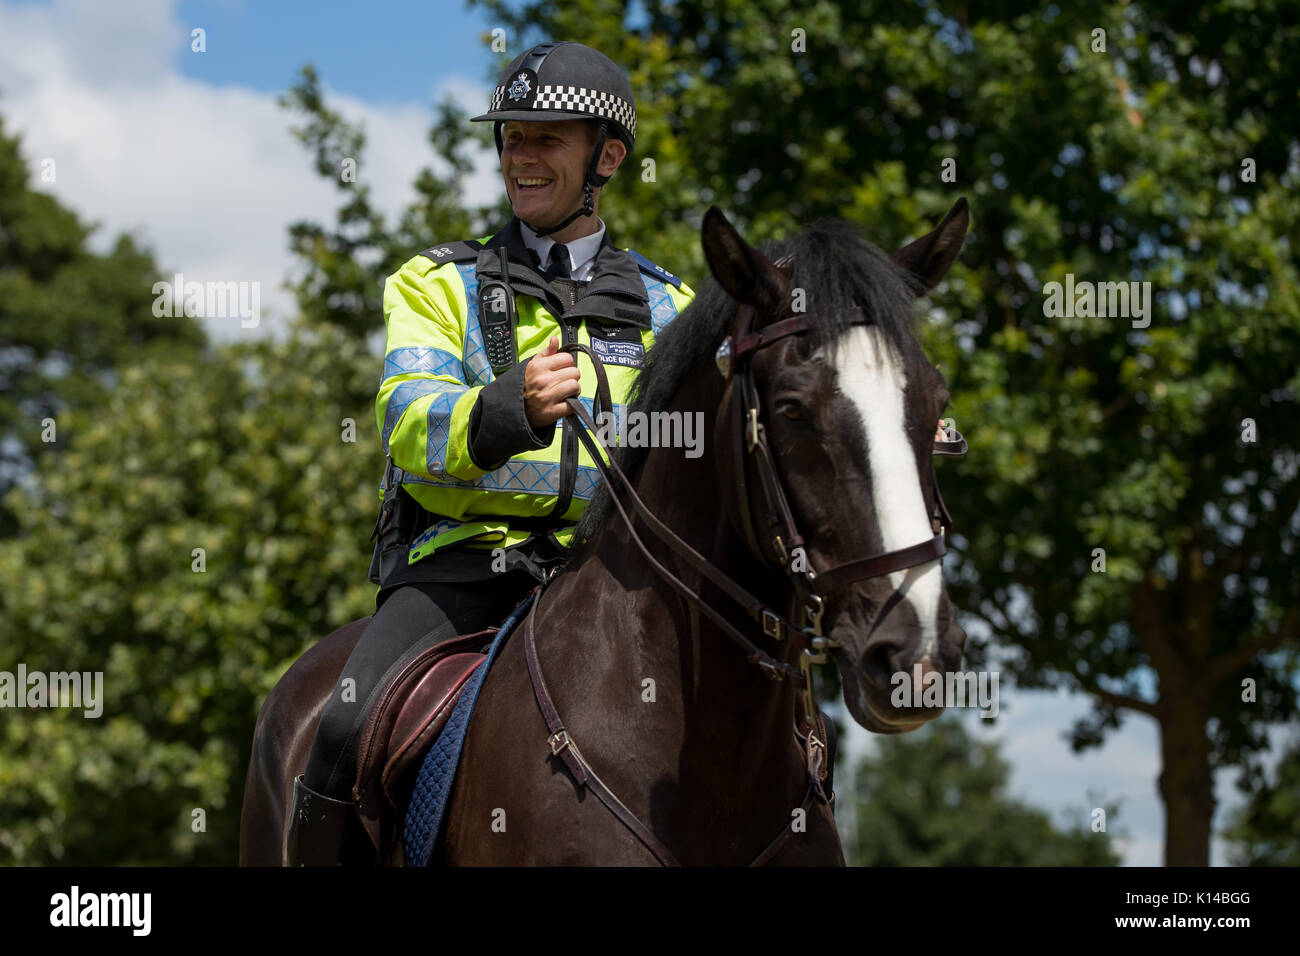 how to become a horse mounted police officer